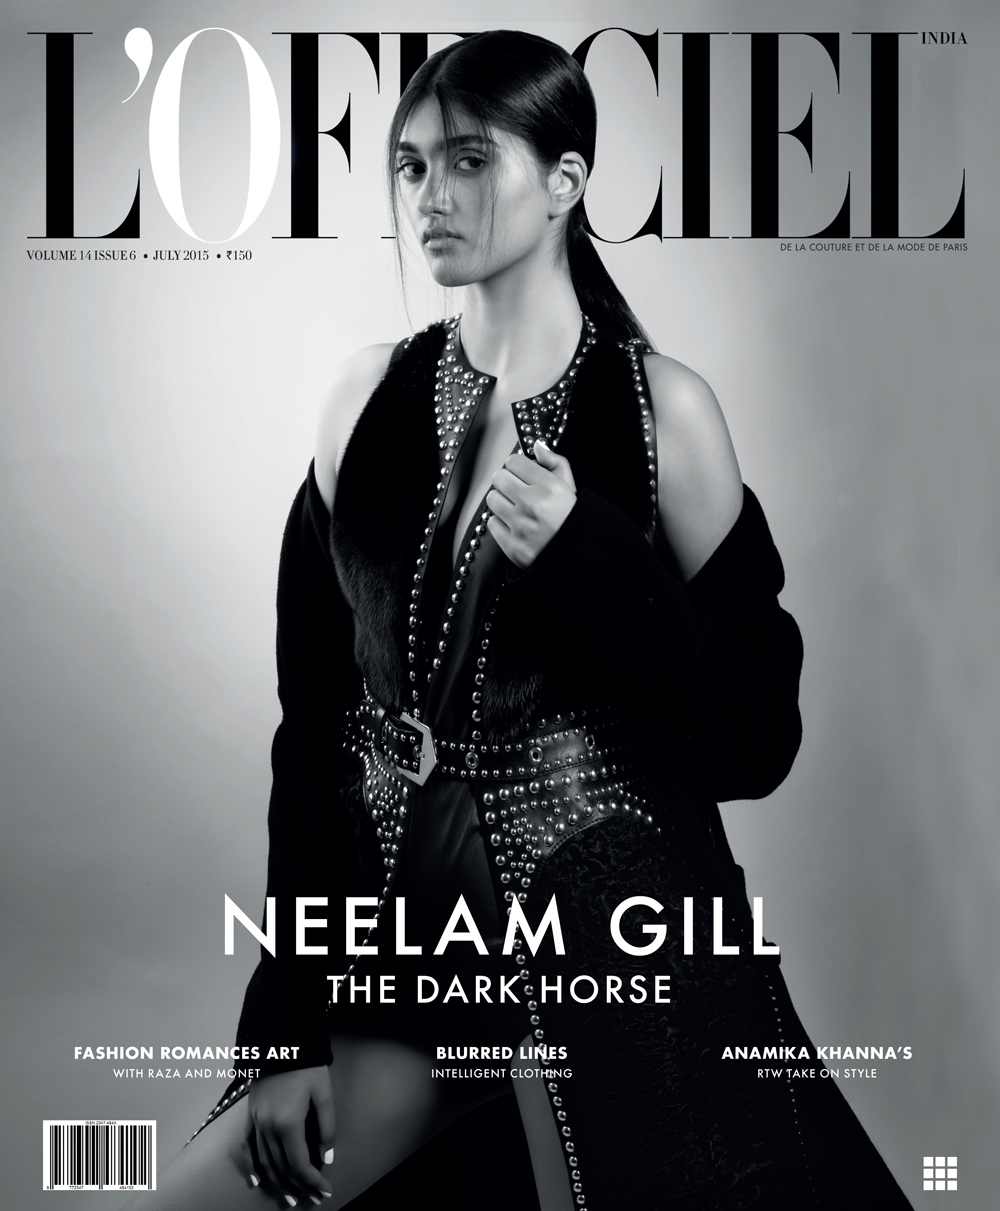 Neelam Gill for L'Officiel India July Issue by Onin Lorente